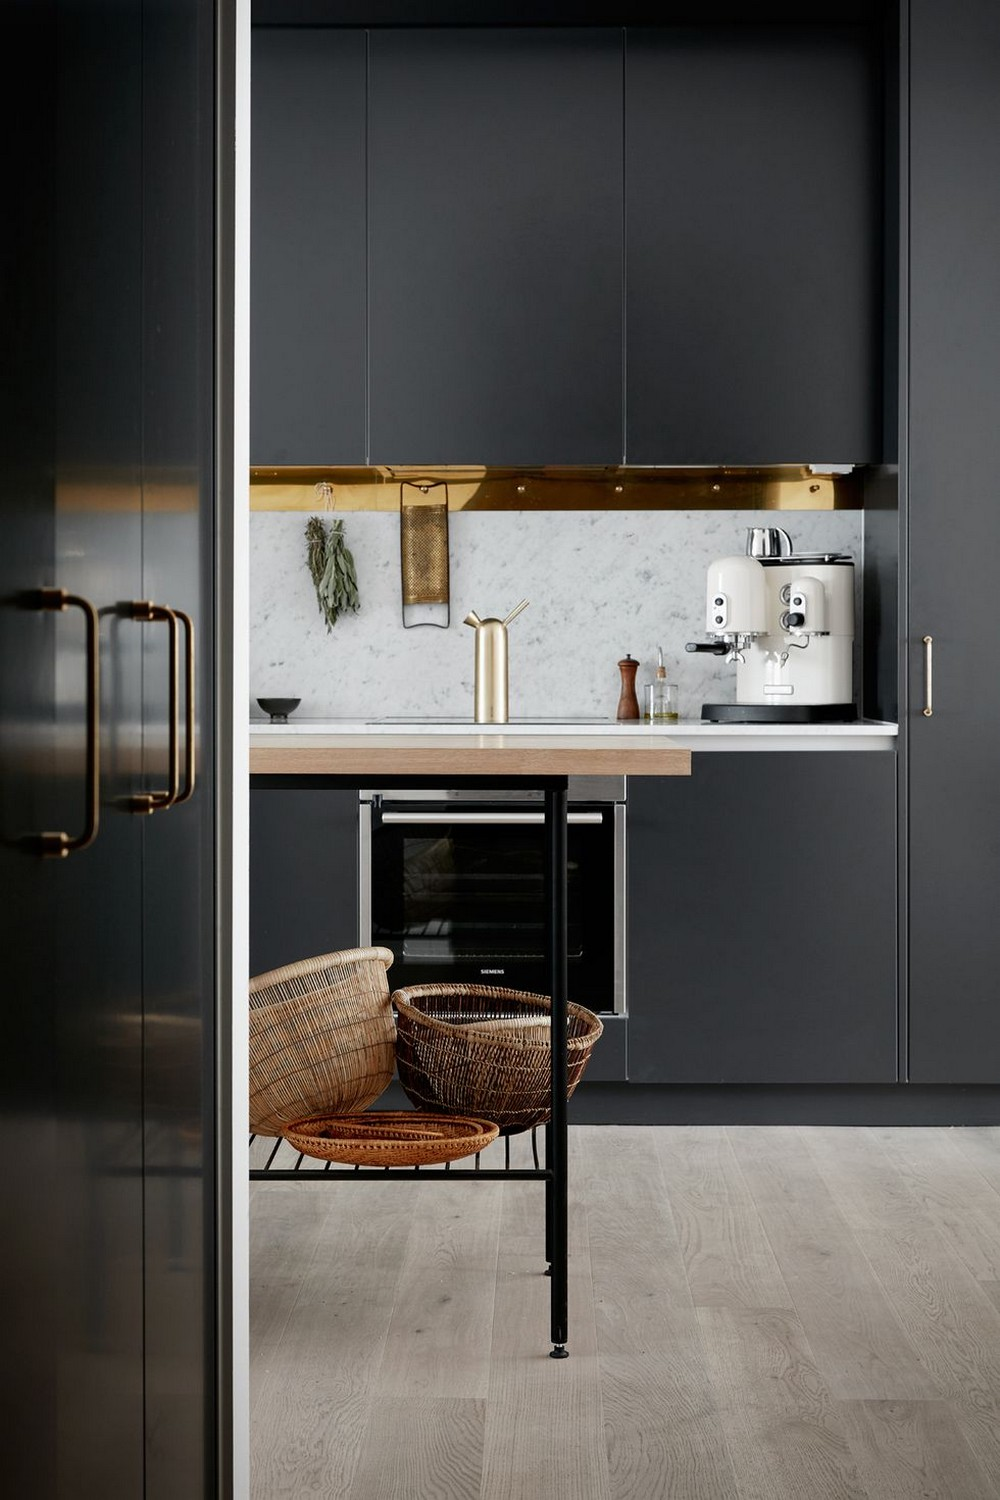 Fashion Your Luxury Kitchen with These Astounding Cabinet Paint Colors 4 luxury kitchen Fashion Your Luxury Kitchen with These Astounding Cabinet Paint Colors Fashion Your Luxury Kitchen with These Astounding Cabinet Paint Colors 4